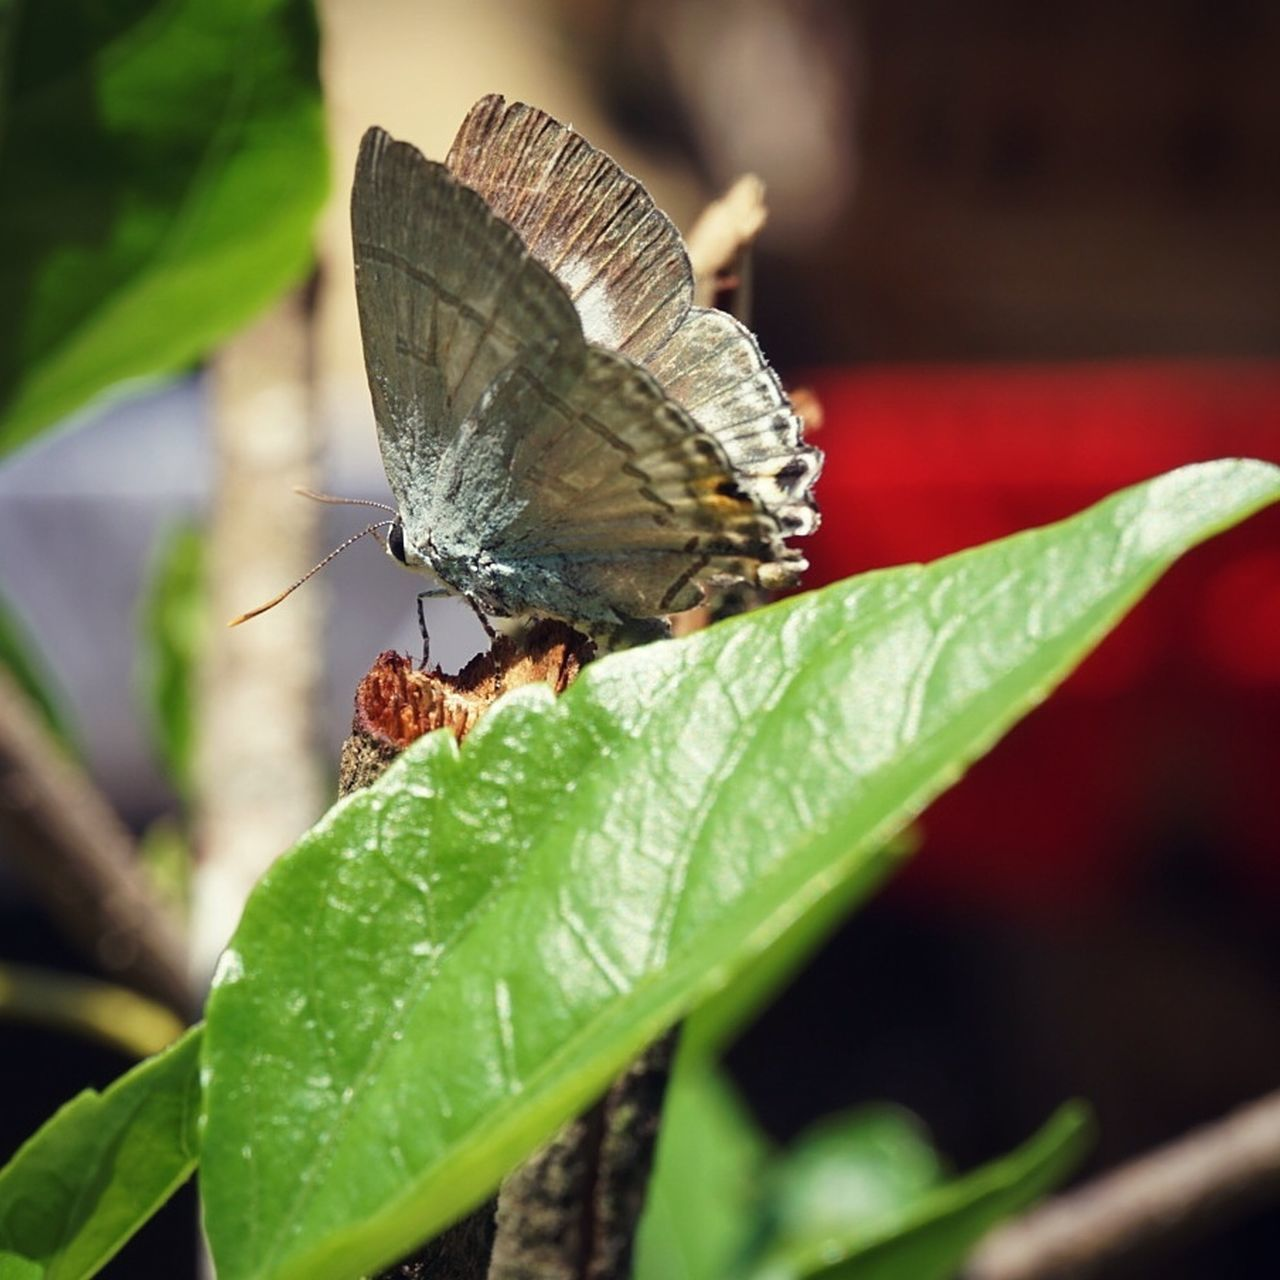 insect, leaf, animals in the wild, one animal, animal themes, butterfly - insect, butterfly, wildlife, plant, close-up, nature, no people, animal wildlife, outdoors, green color, day, growth, beauty in nature, perching, fragility, spread wings, freshness